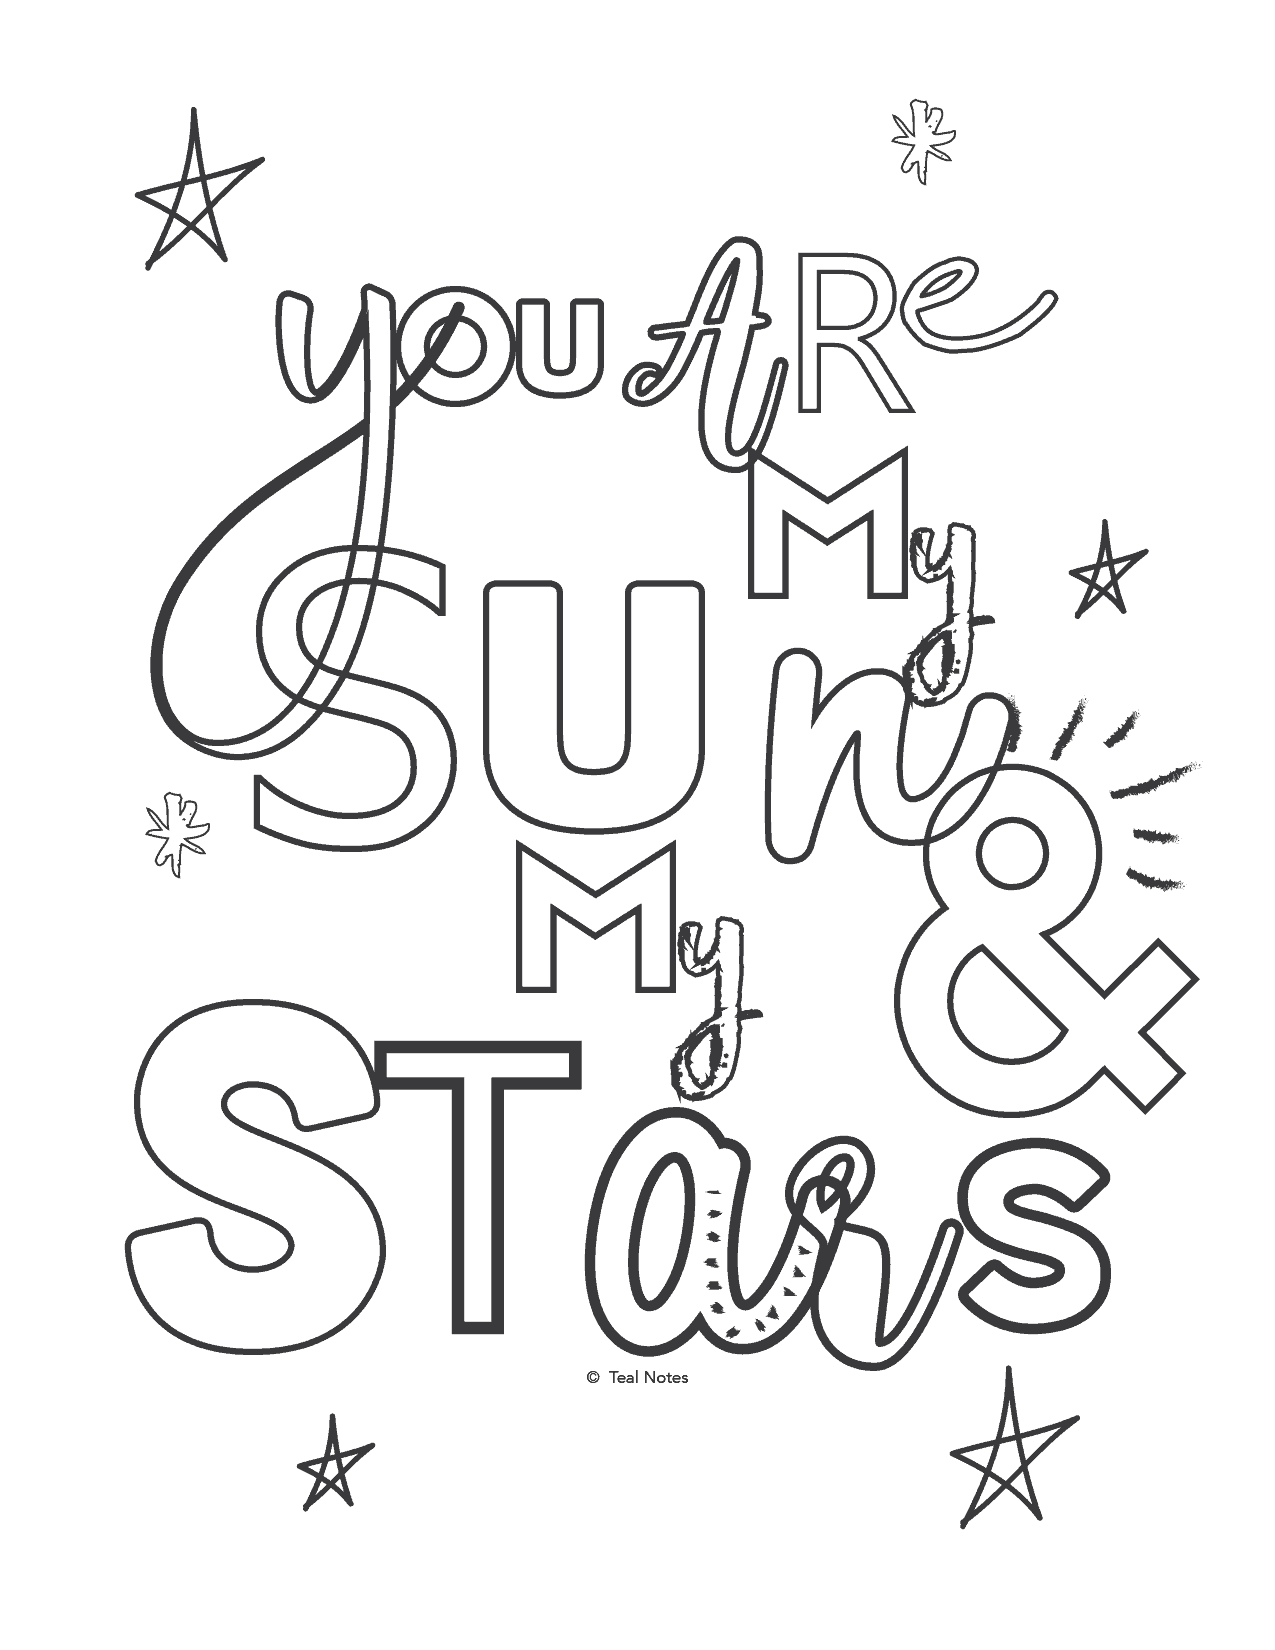 5 Quote Coloring Pages You Can Print And Color On Your ...